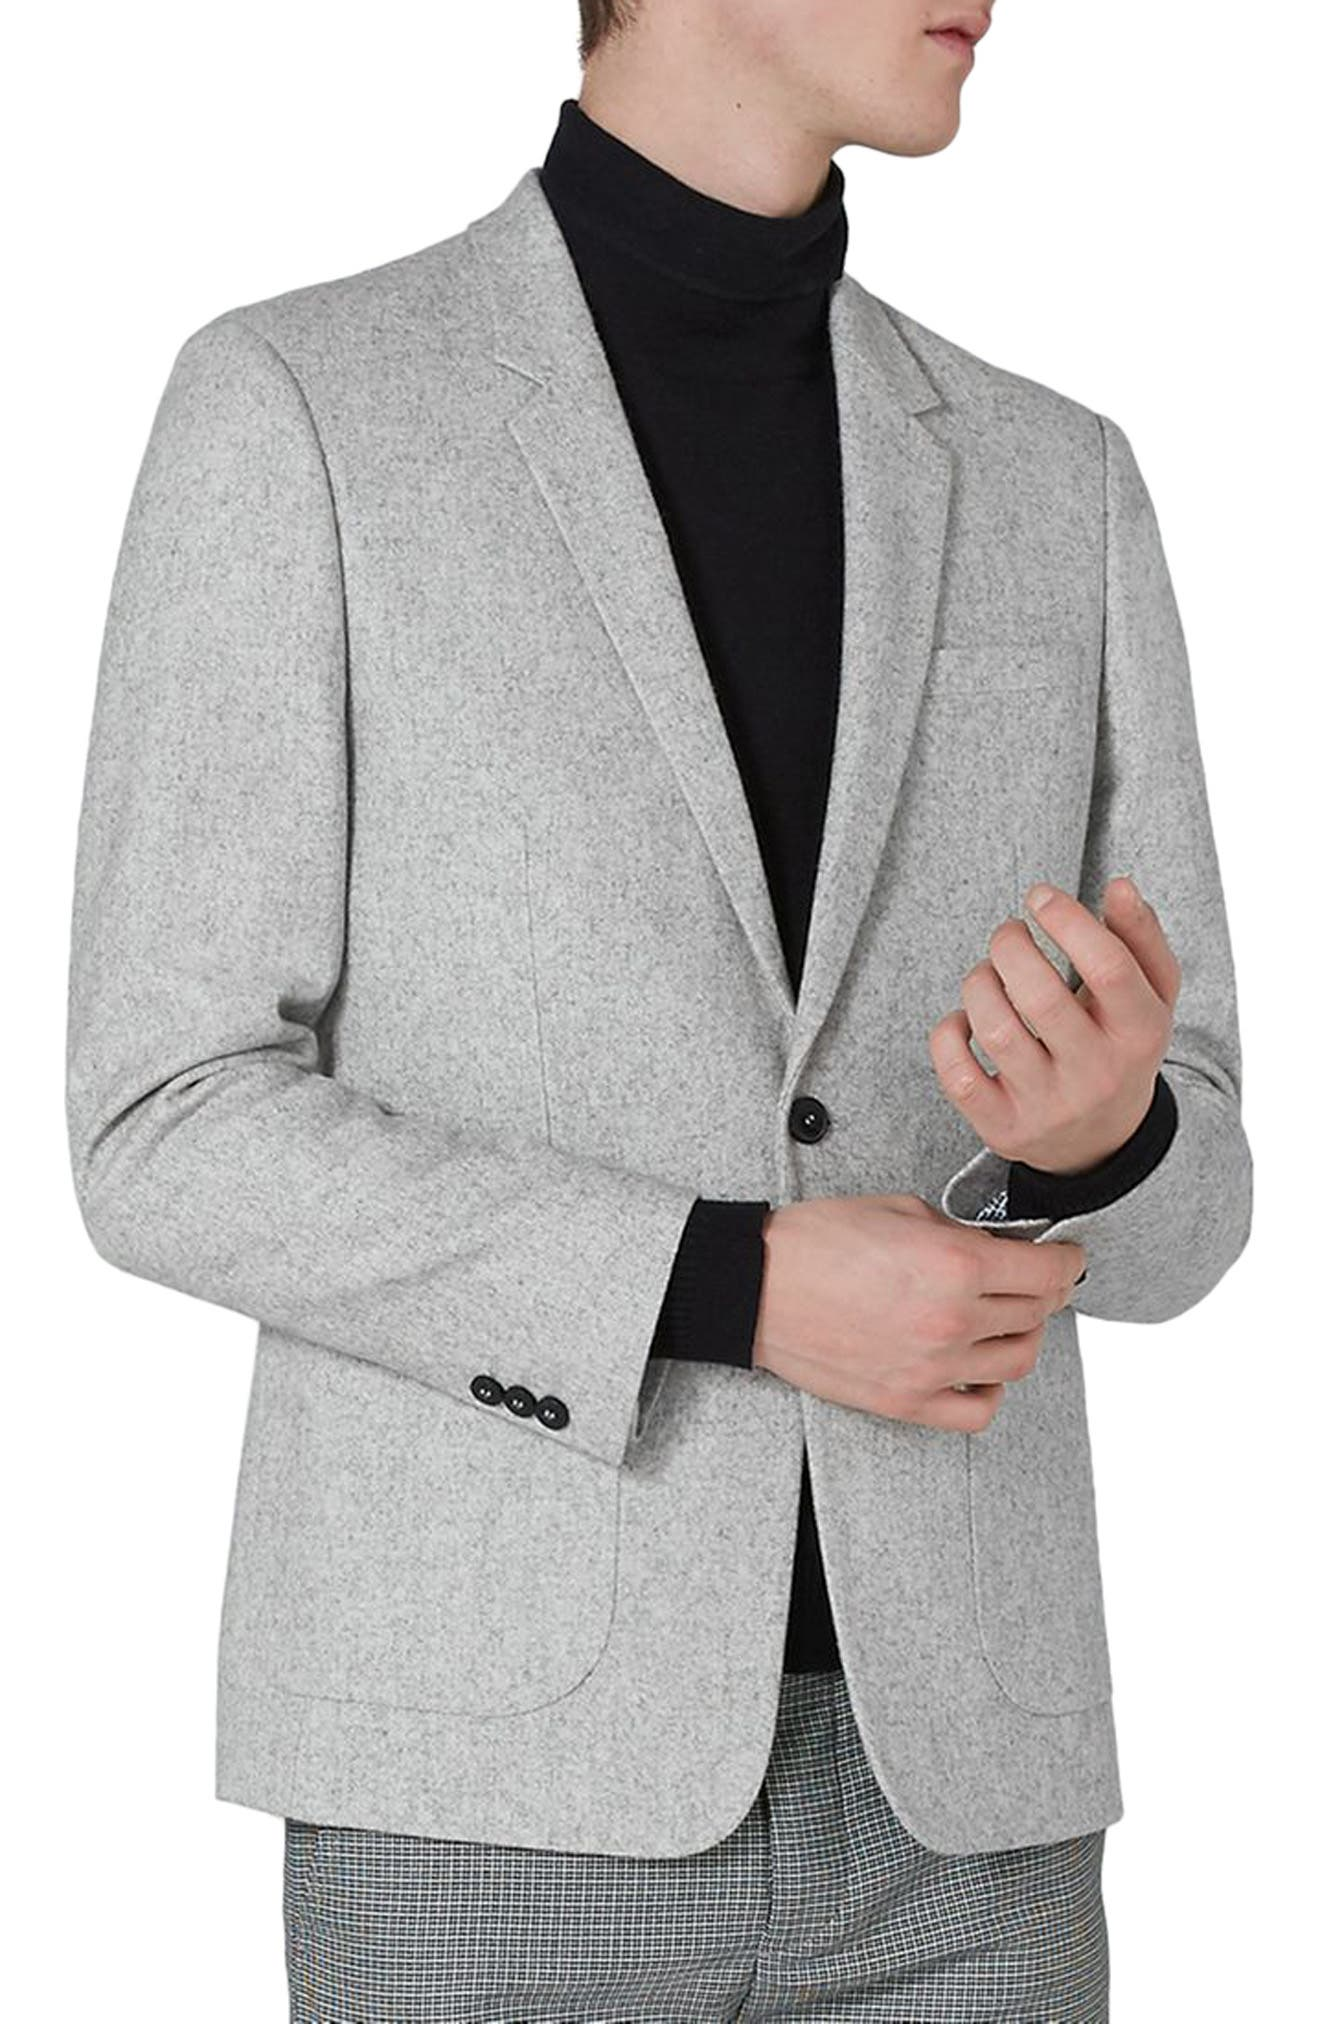 Murdoch One-Button Jacket,                             Main thumbnail 1, color,                             Light Grey